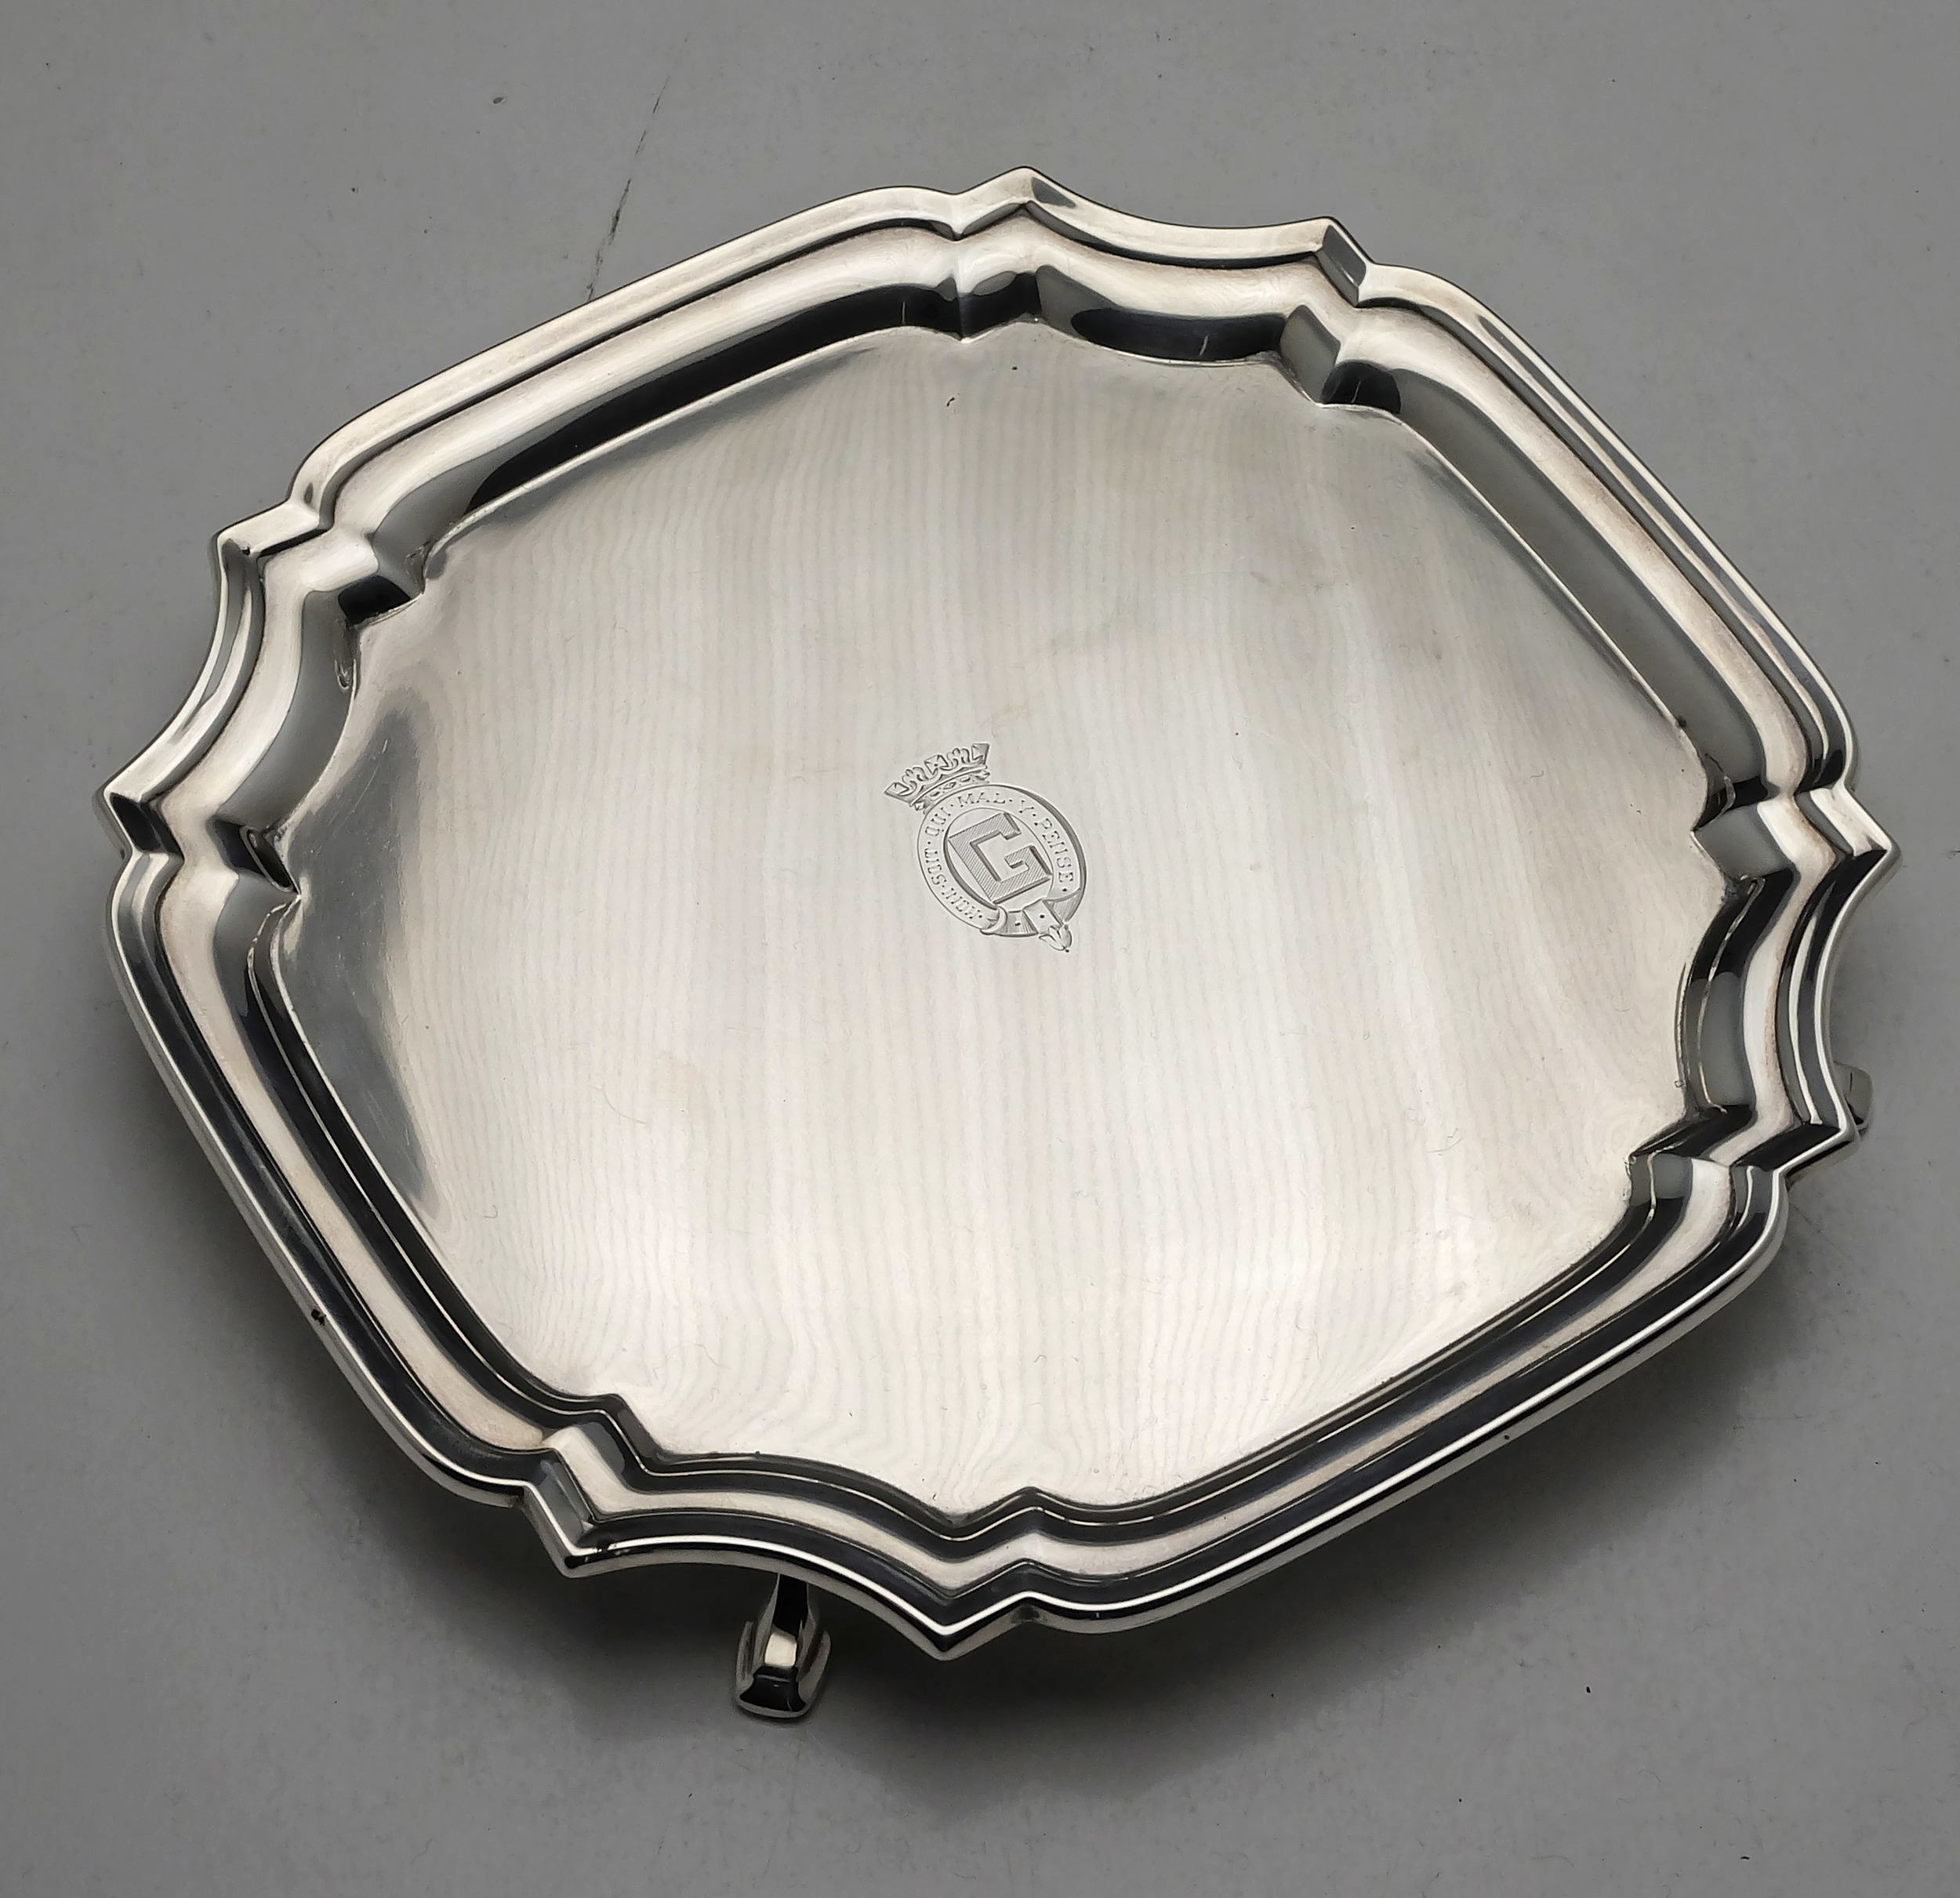 'Crested Sterling Silver Footed Salver London Robert Pringle & Sons 1933 301g'